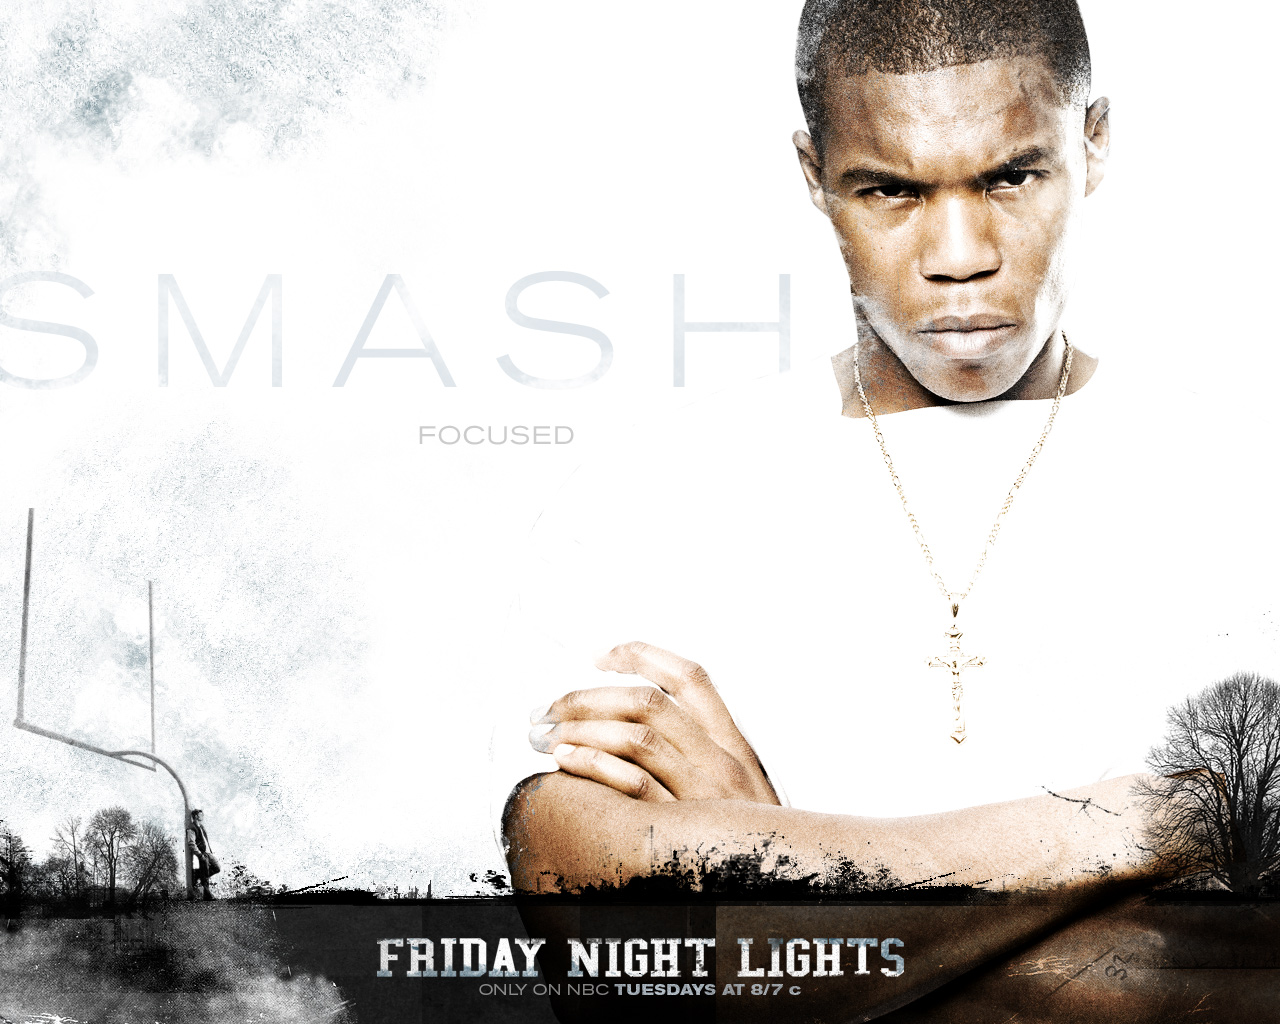 Friday Night Lights You are downloading Friday Night Lights wallpaper 1280x1024